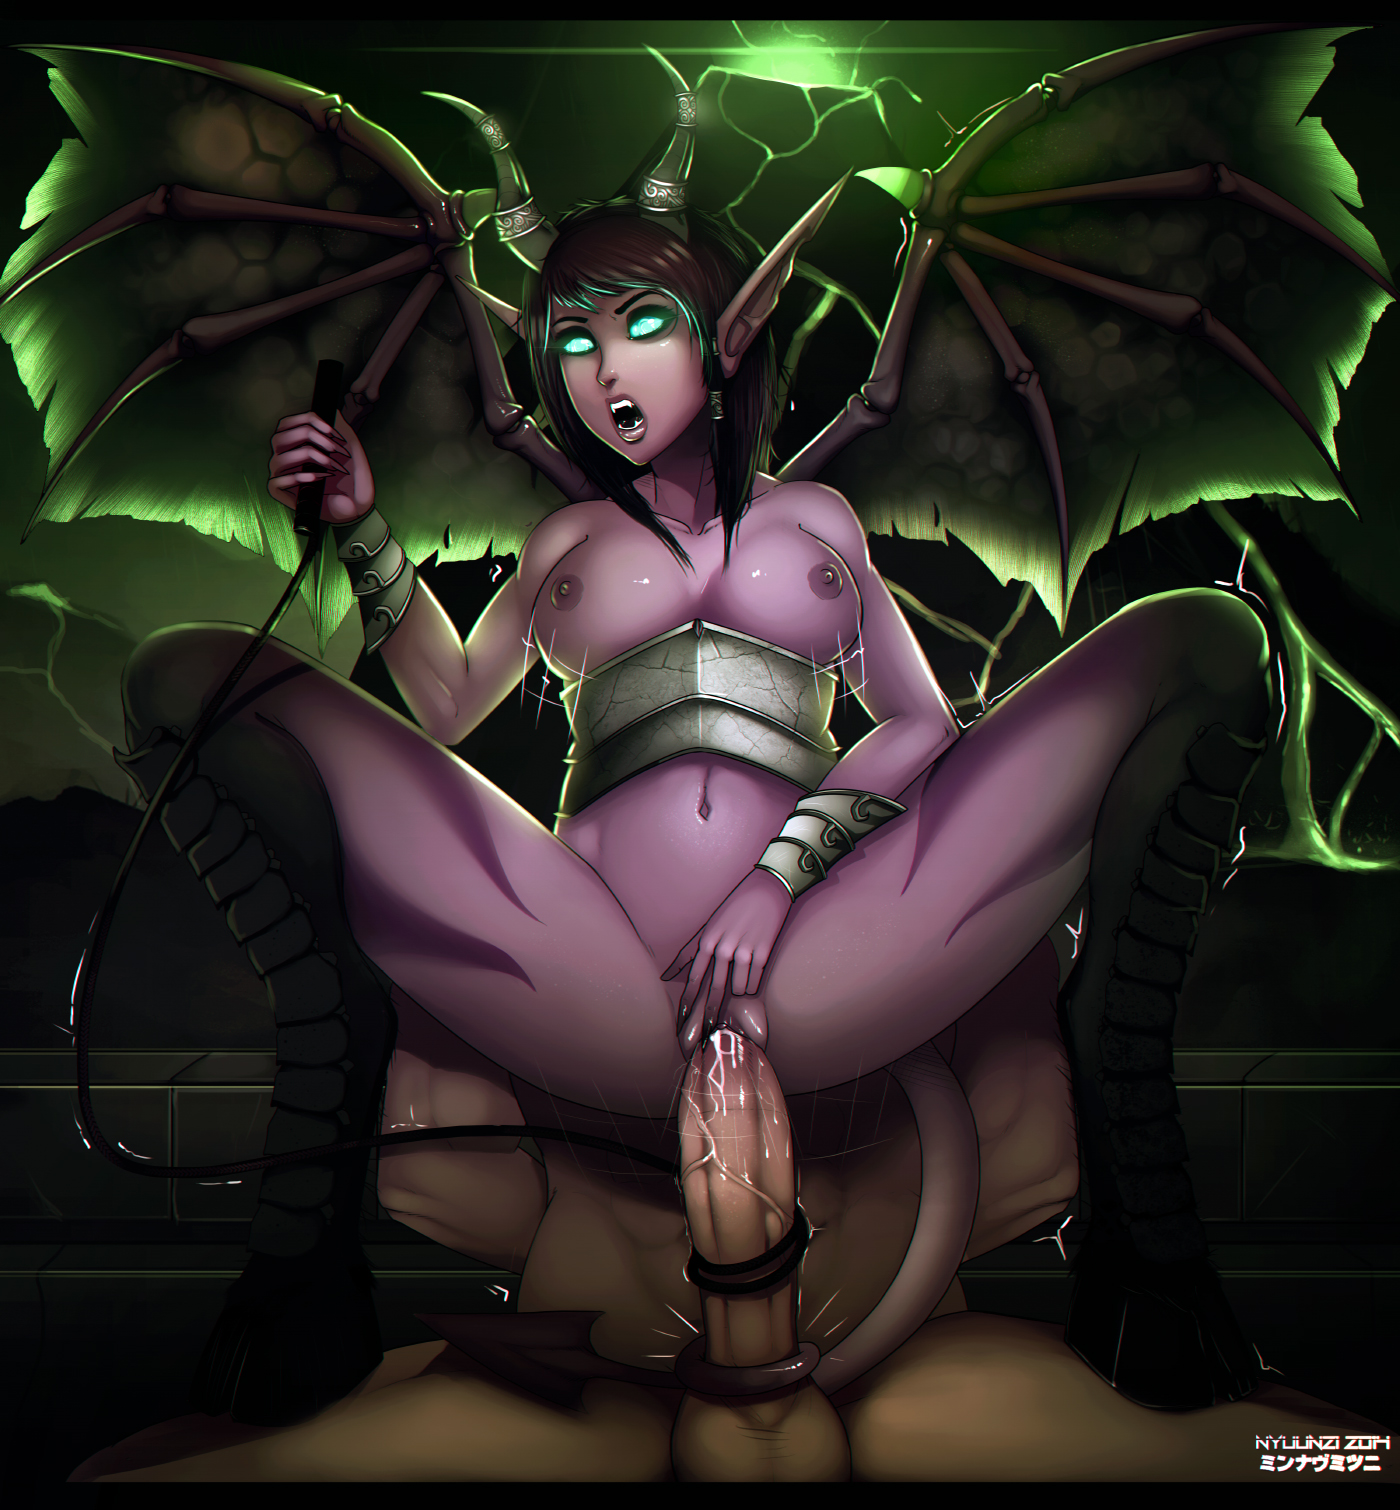 World of warcraft demon porn pic erotic pics